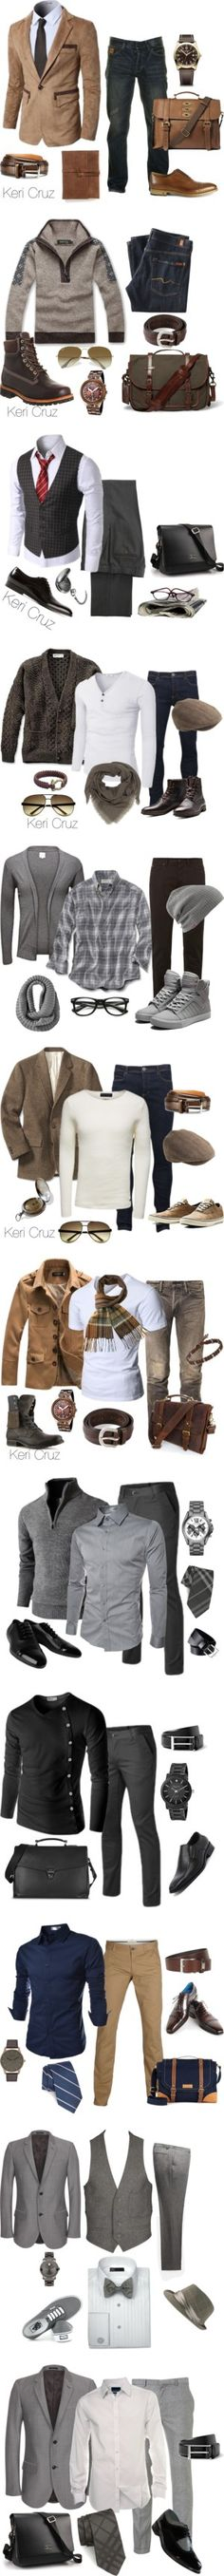 mens by meccafit on Polyvore featuring Doublju, Two Stoned, Paul Smith, Mulberry, Victorinox Swiss Army, Allen Edmonds, Emili, Ray-Ban, Timberland and Polo Ralph Lauren